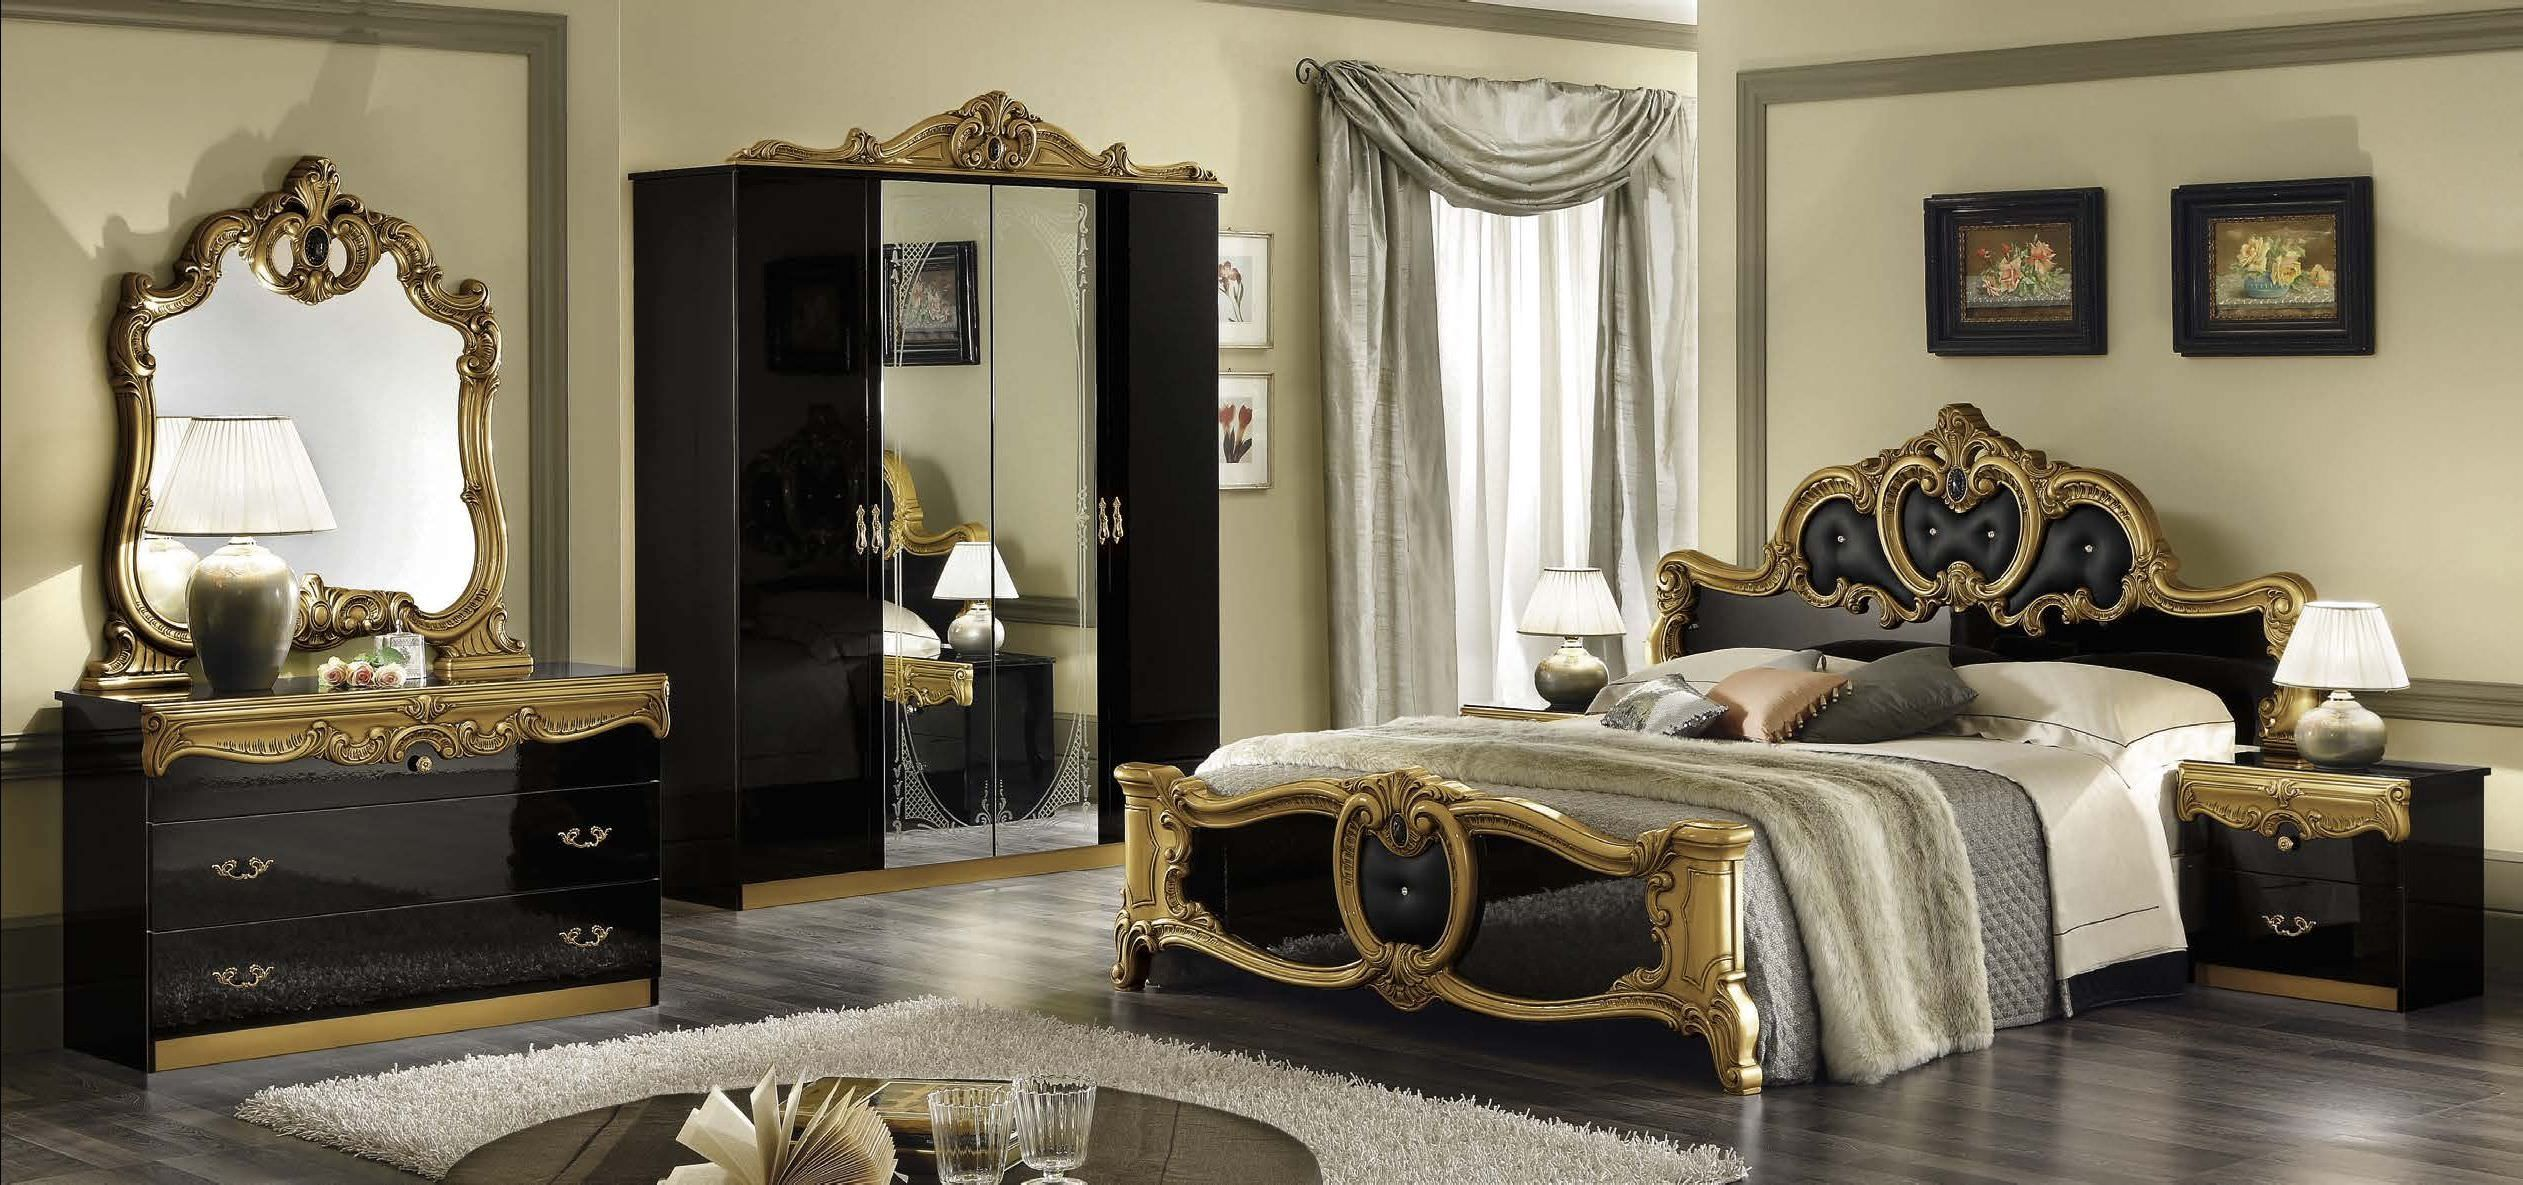 Black and gold bedroom - Marvelous Black And Gold Bedroom Design Black Gold Bedroom Decorating Design Furniture Ideas Decoration Idea